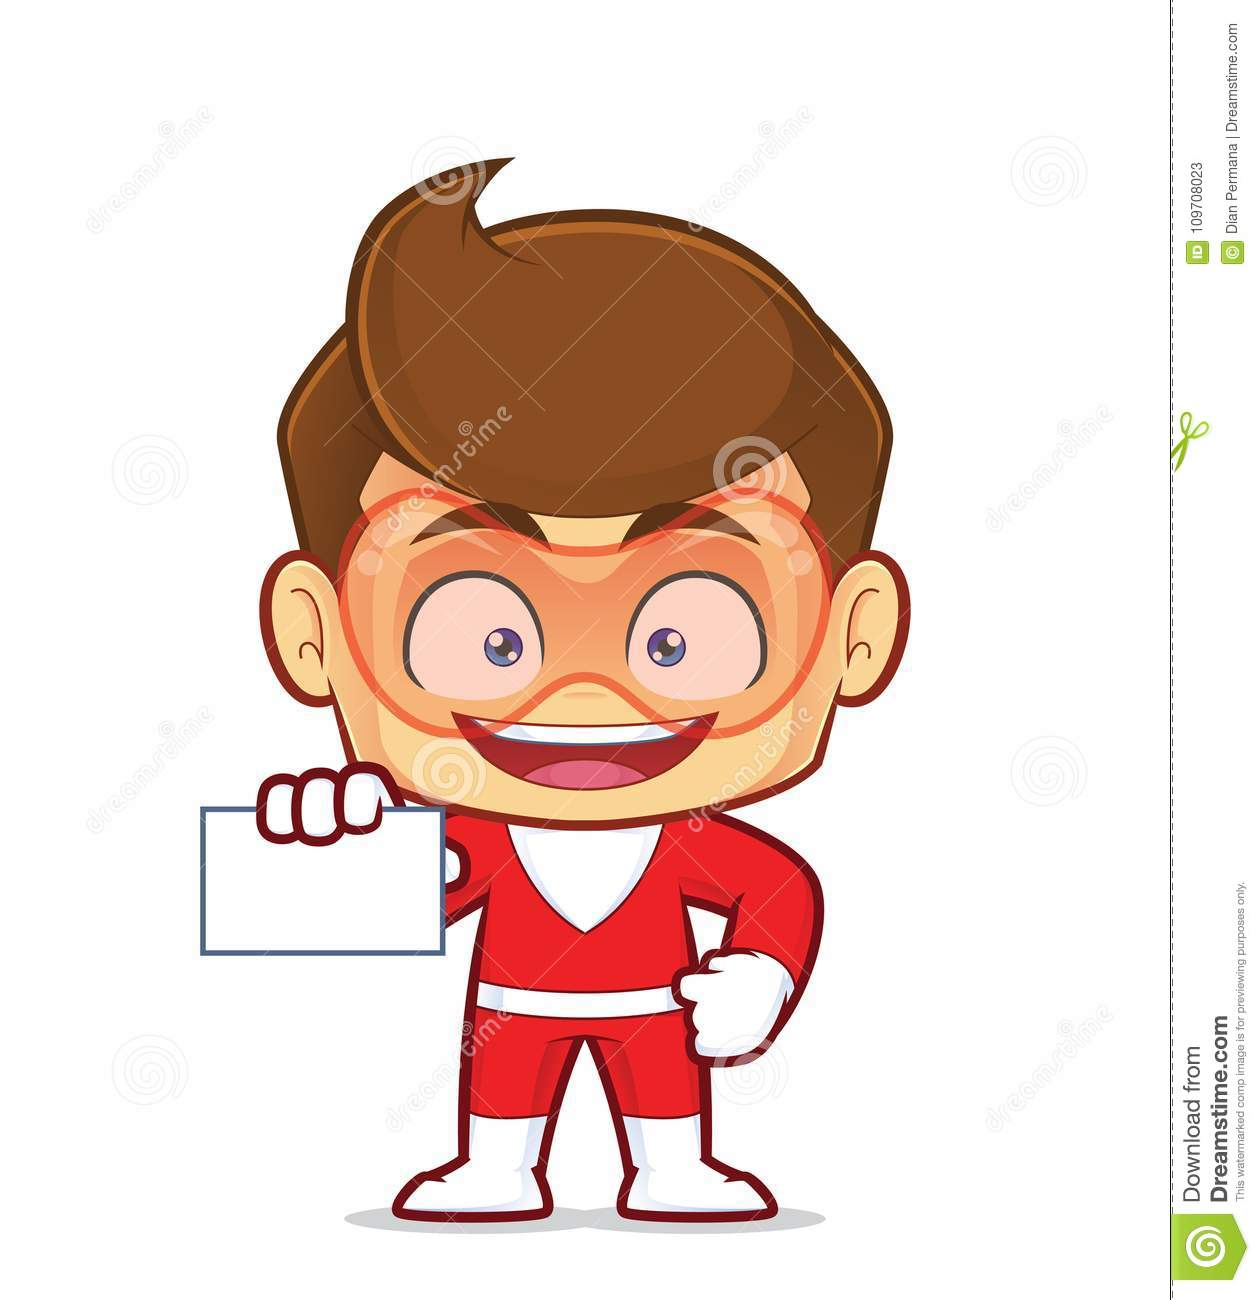 Superhero holding a blank business card stock vector illustration clipart picture of a superhero cartoon character holding a blank business card colourmoves